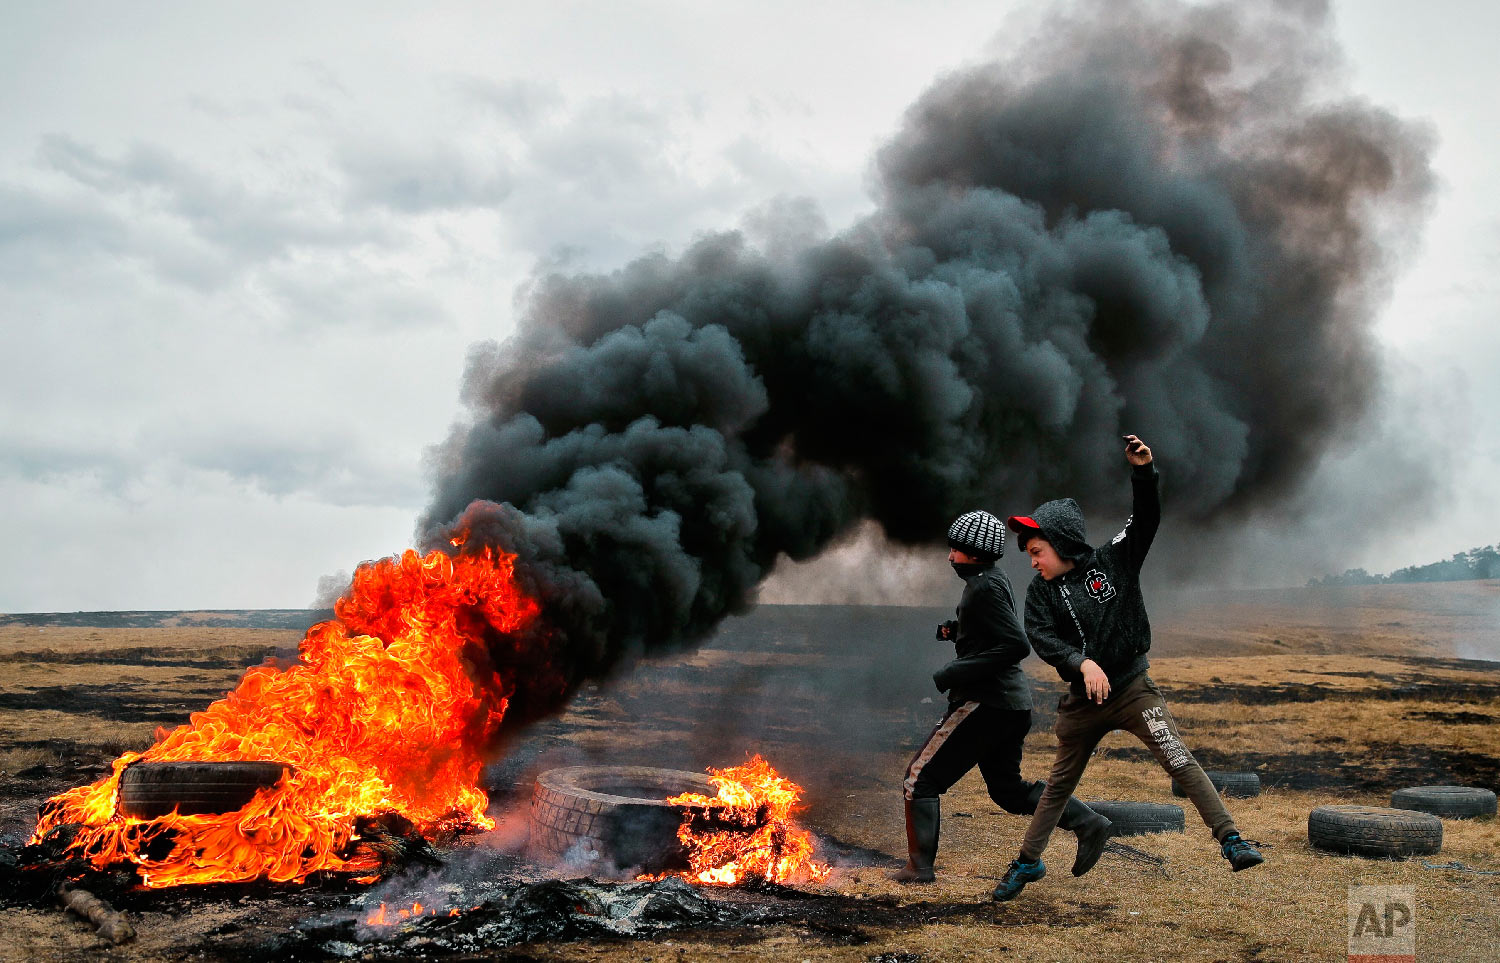 Children jump after pushing a burning tire during a ritual marking the upcoming Clean Monday, the beginning of the Great Lent, 40 days ahead of Orthodox Easter, on the hills surrounding the village of Poplaca, in central Romania's Transylvania region, Sunday, March 10, 2019. (AP Photo/Vadim Ghirda)